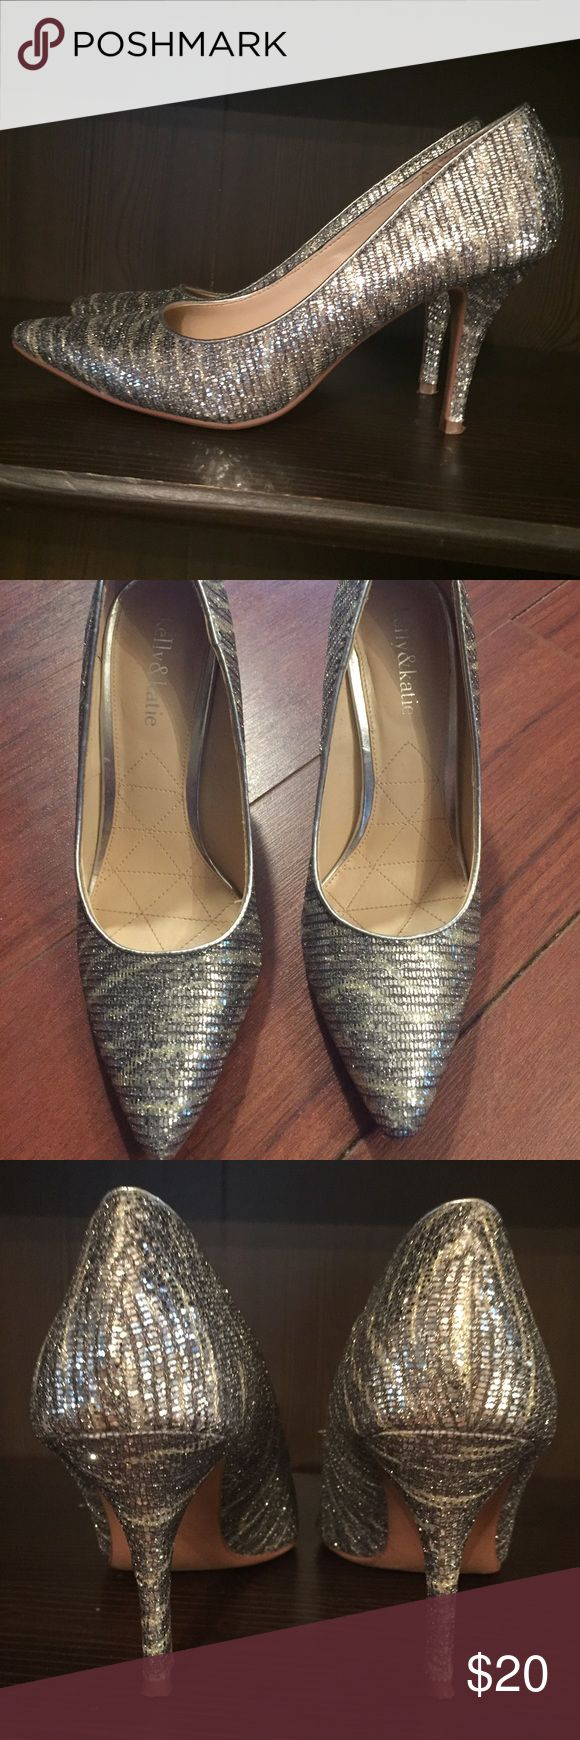 """Kelly & Katie gold and silver glitter heels Size 8, new, worn one time, silver and gold, 3"""" heels Kelly & Katie Shoes Heels"""